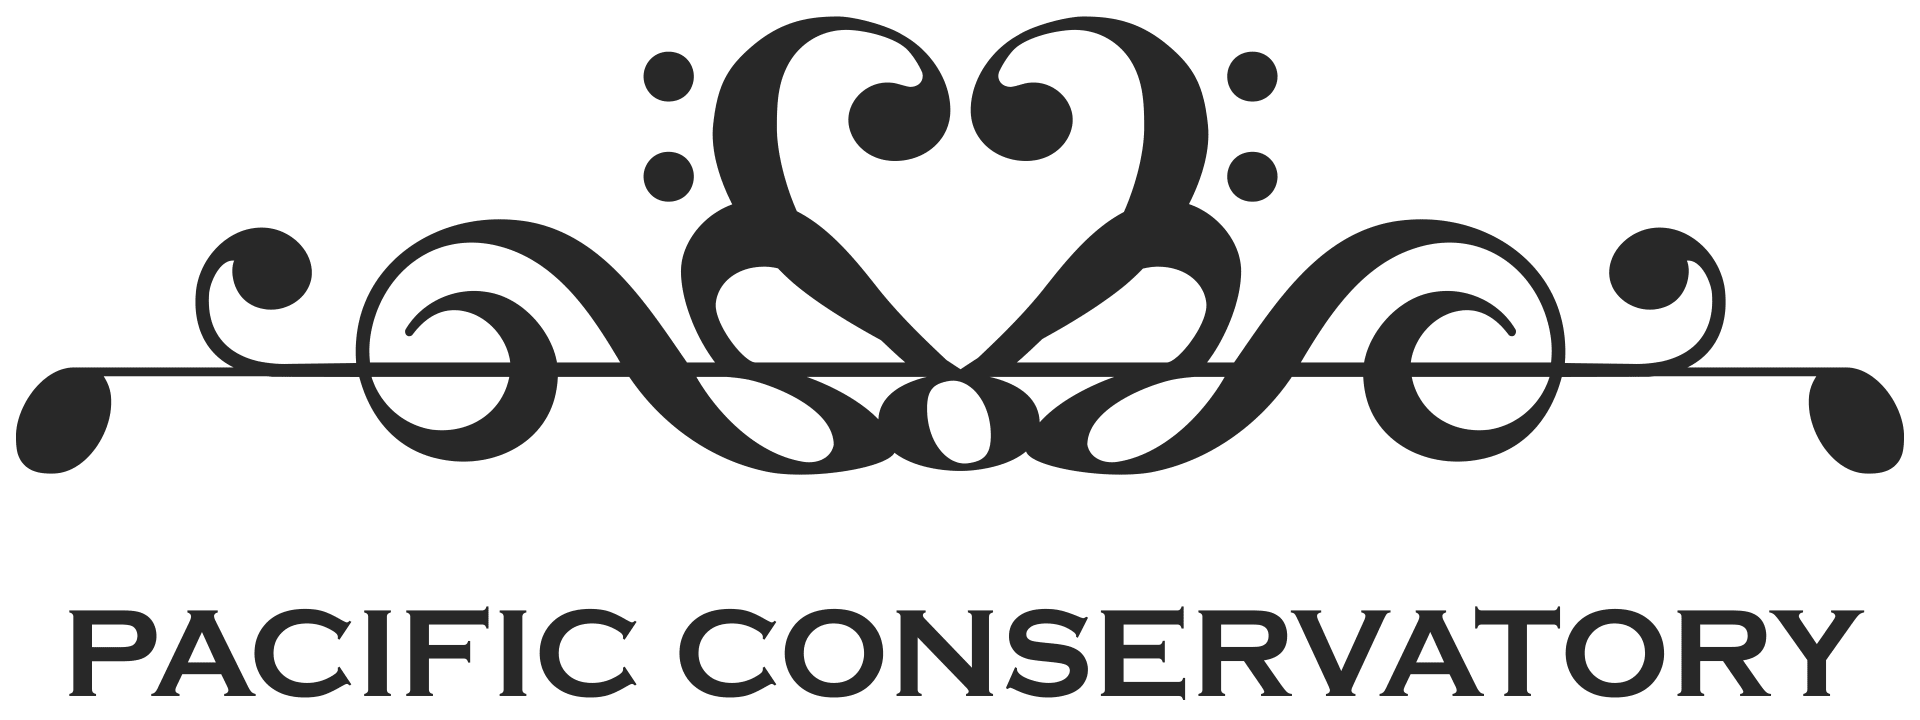 PacificConservatoryMusicLogo6ft-w1920.png